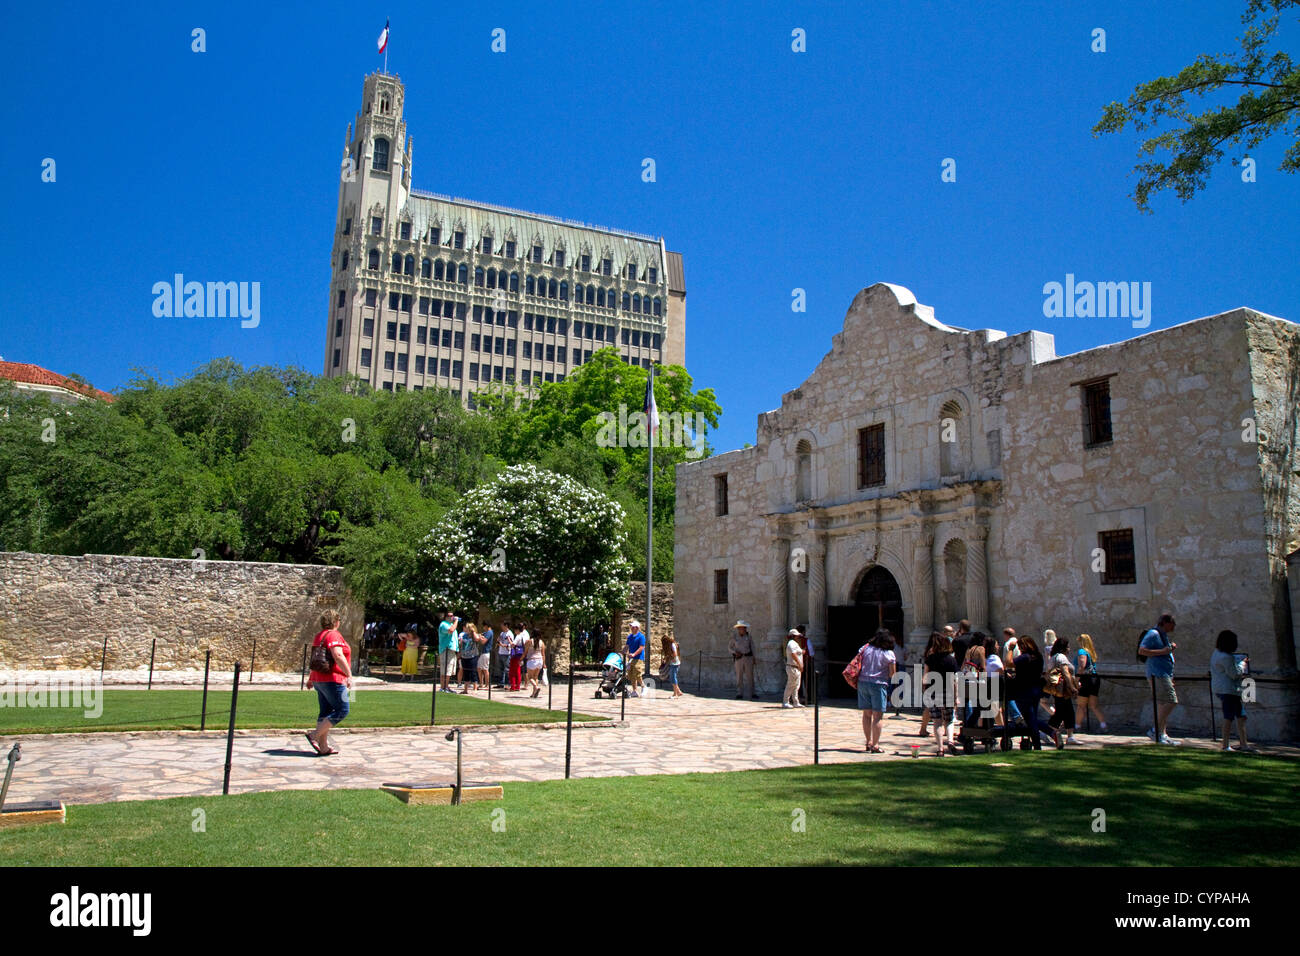 The chapel of the Alamo Mission located in downtown San Antonio, Texas, USA. - Stock Image